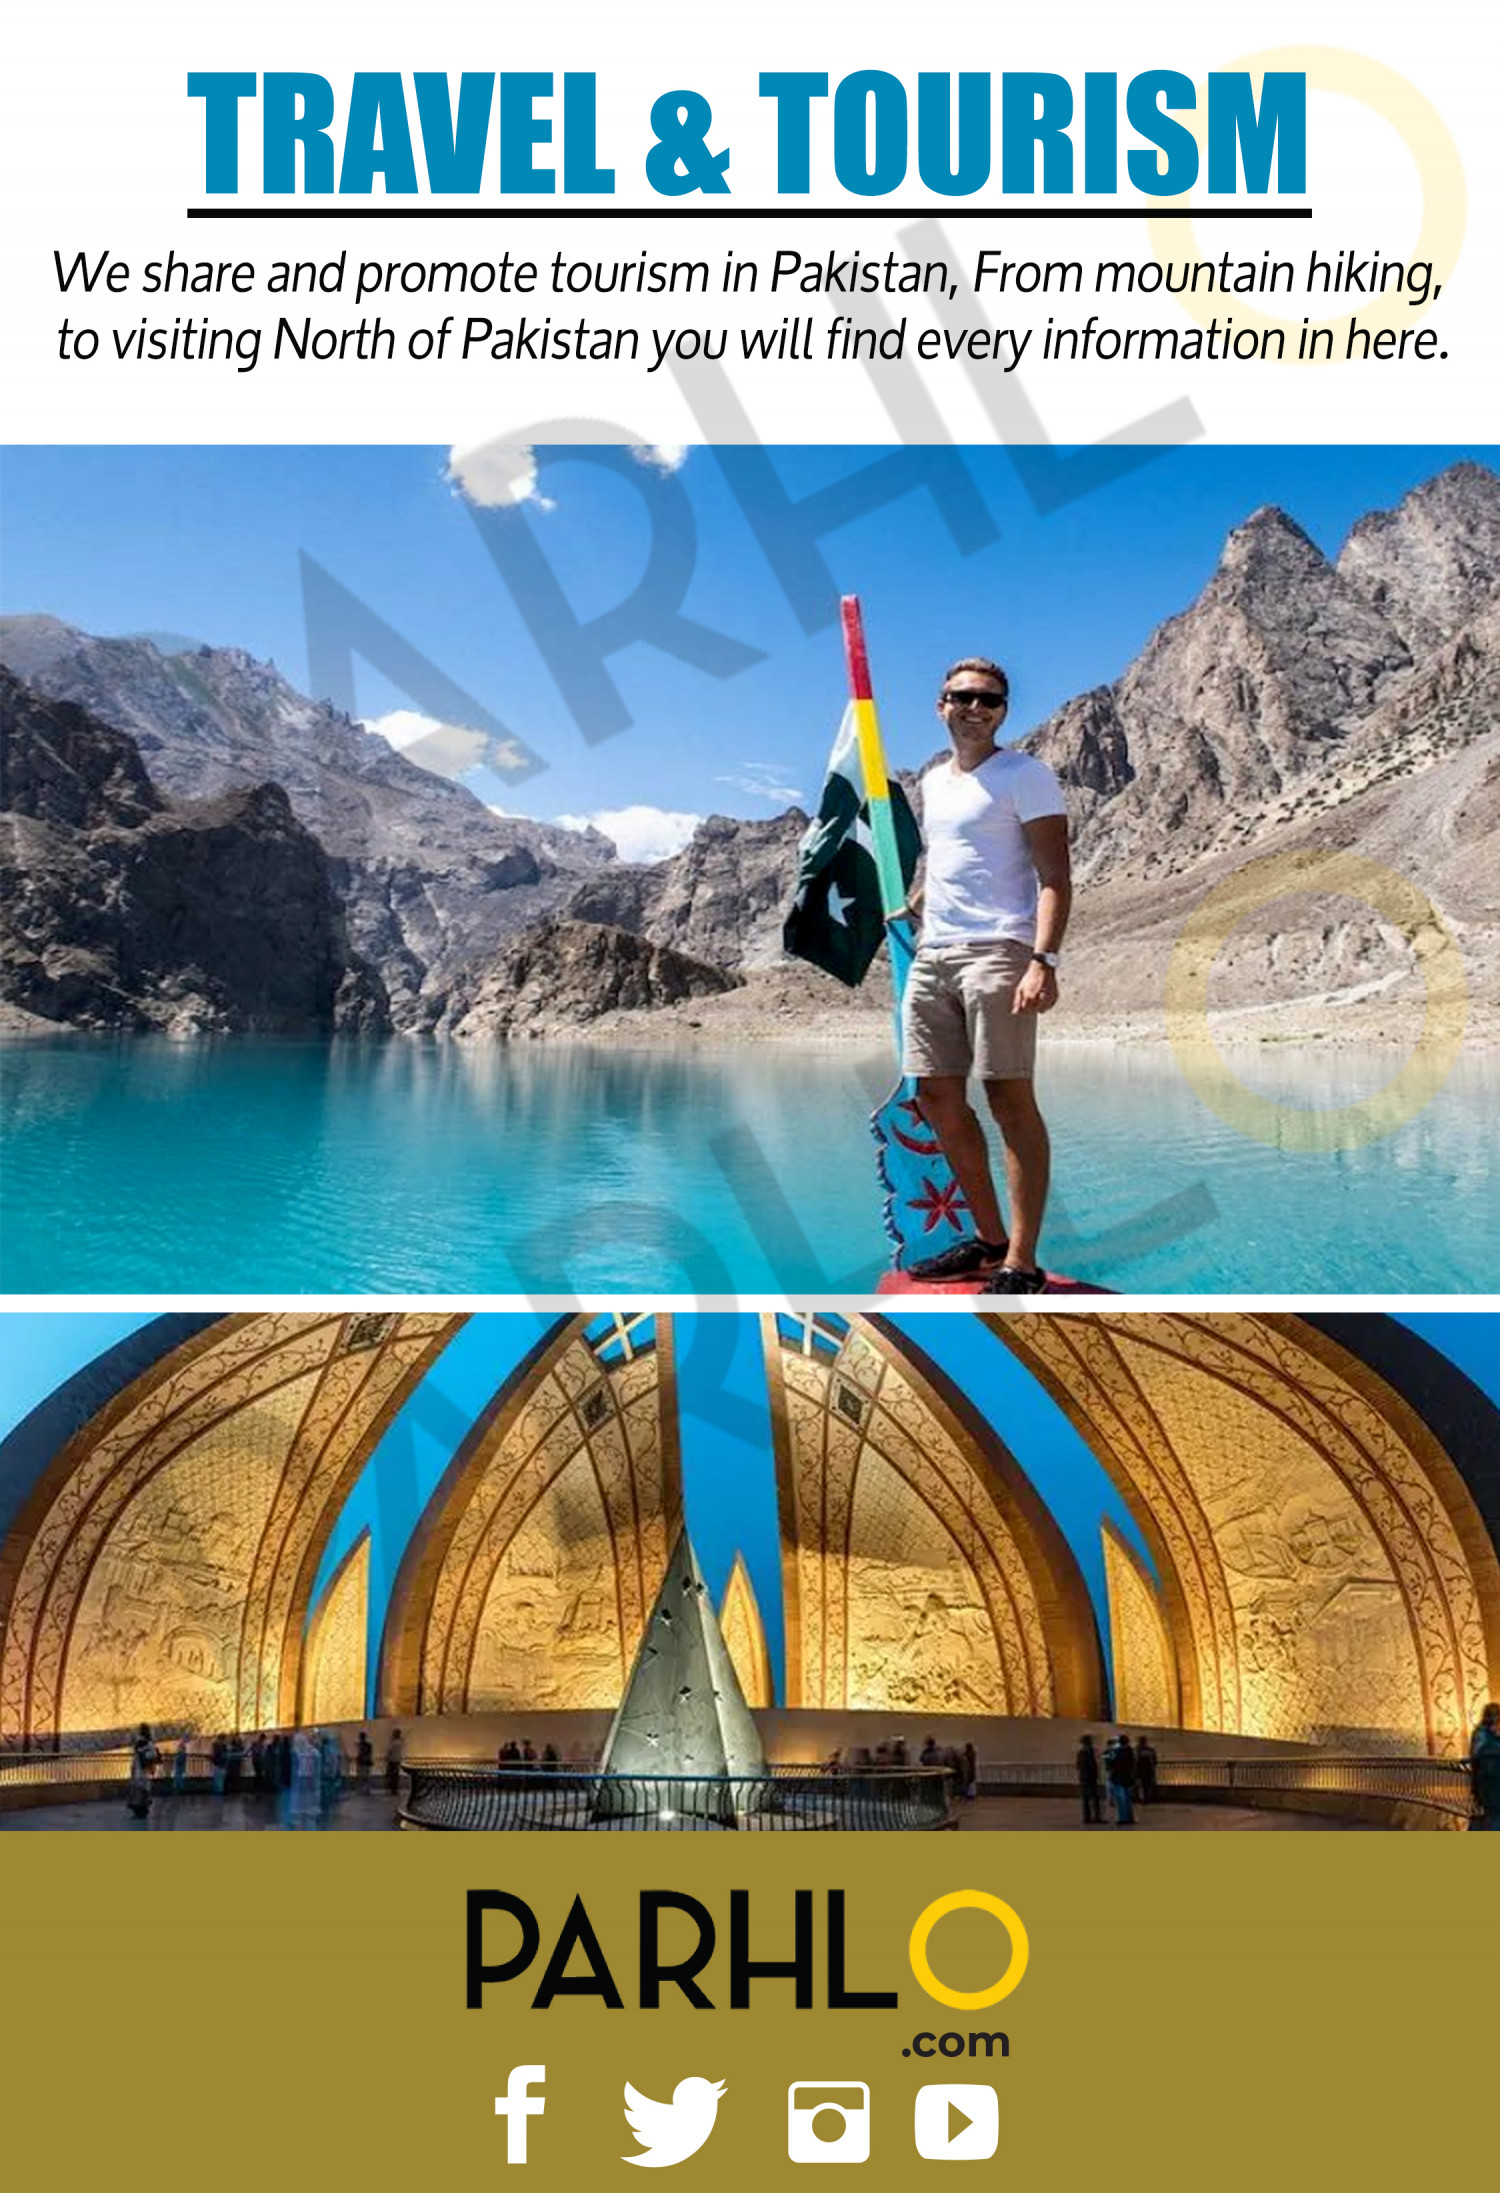 Get To Know The Beautiful Pakistan - Parhlo.com Infographic